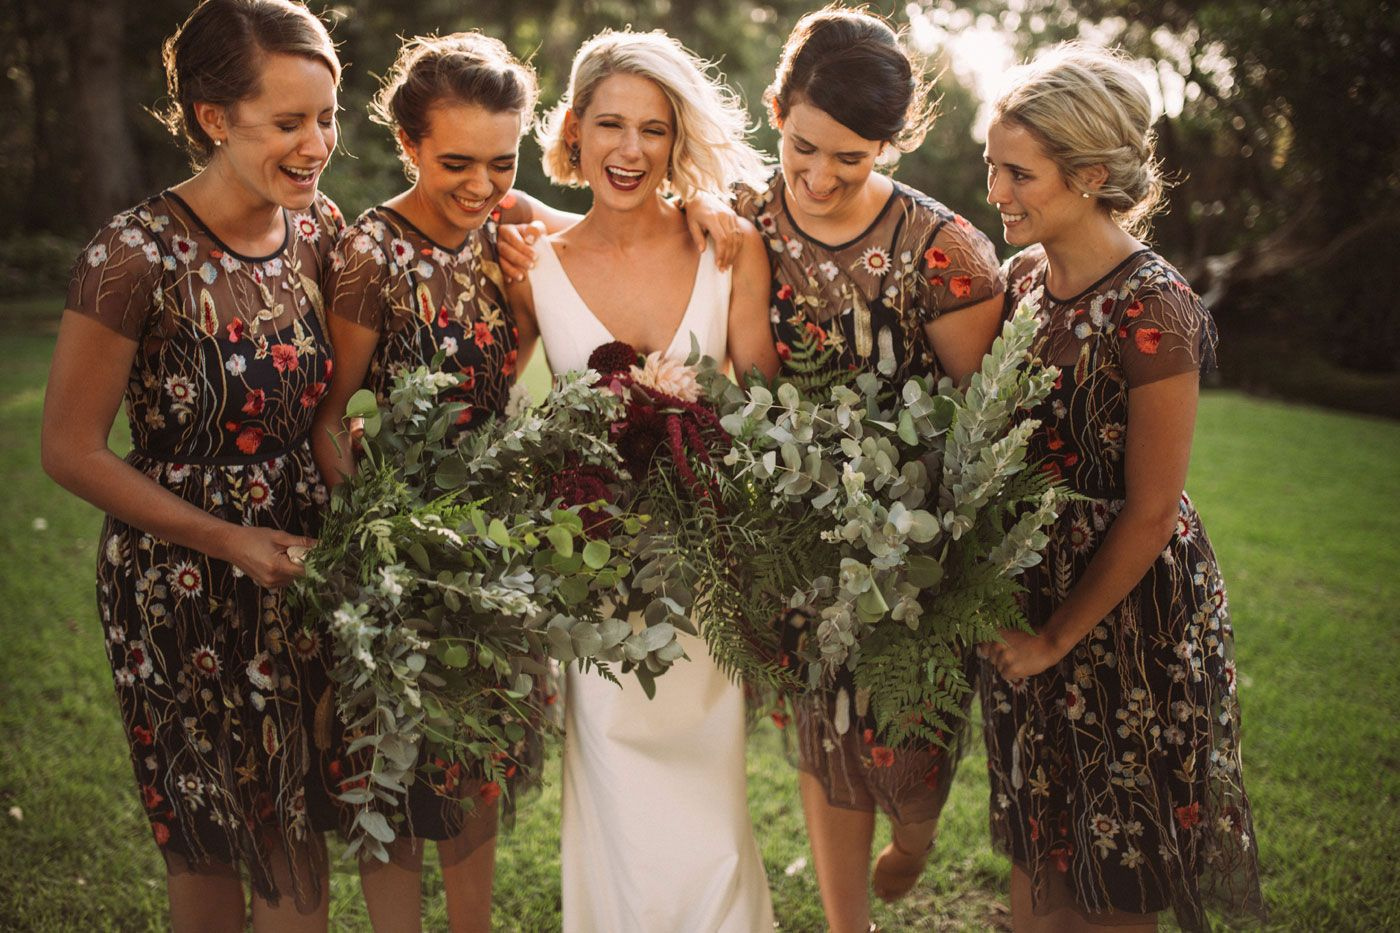 auckland wedding photographer moira west